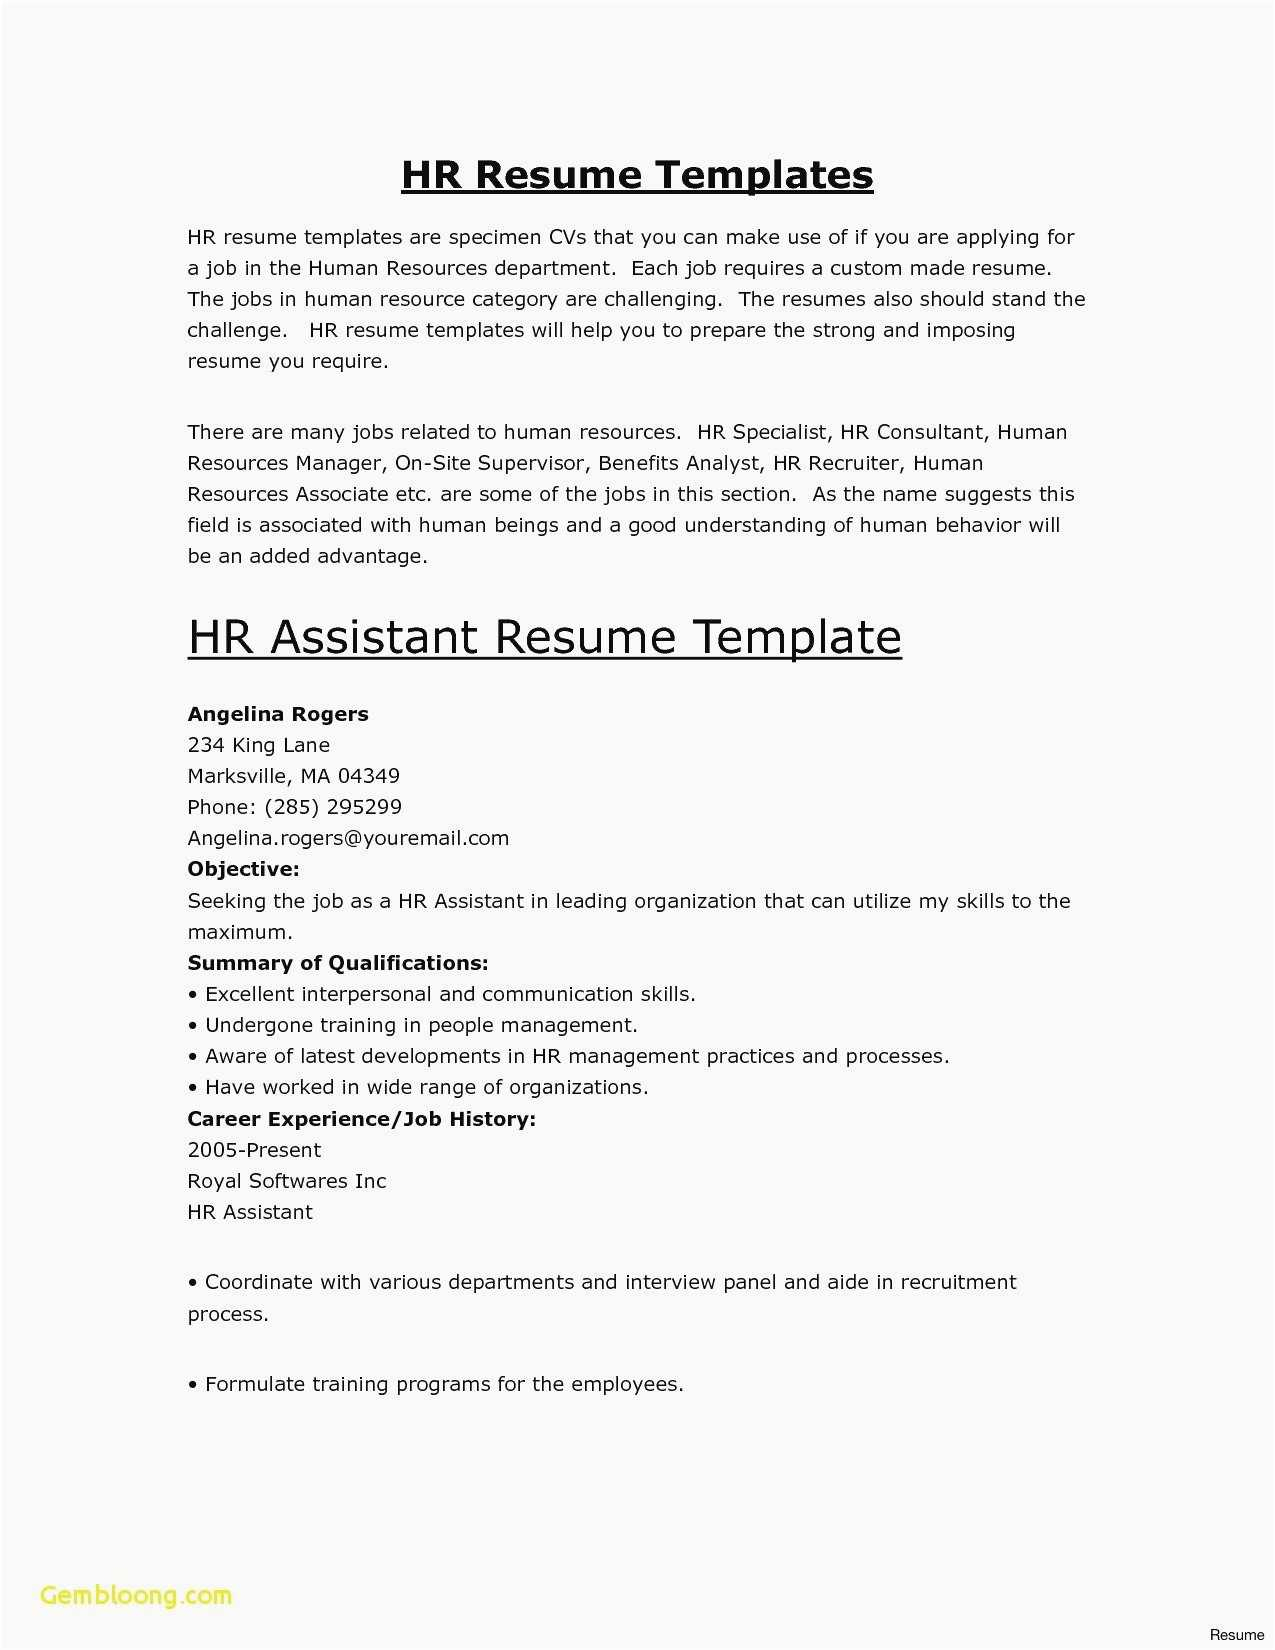 cover letter for resume template example-Cover Letter for Resume Template Elegant Awesome Pr Resume Template Elegant Dictionary Template 0d Archives Sample 12-f